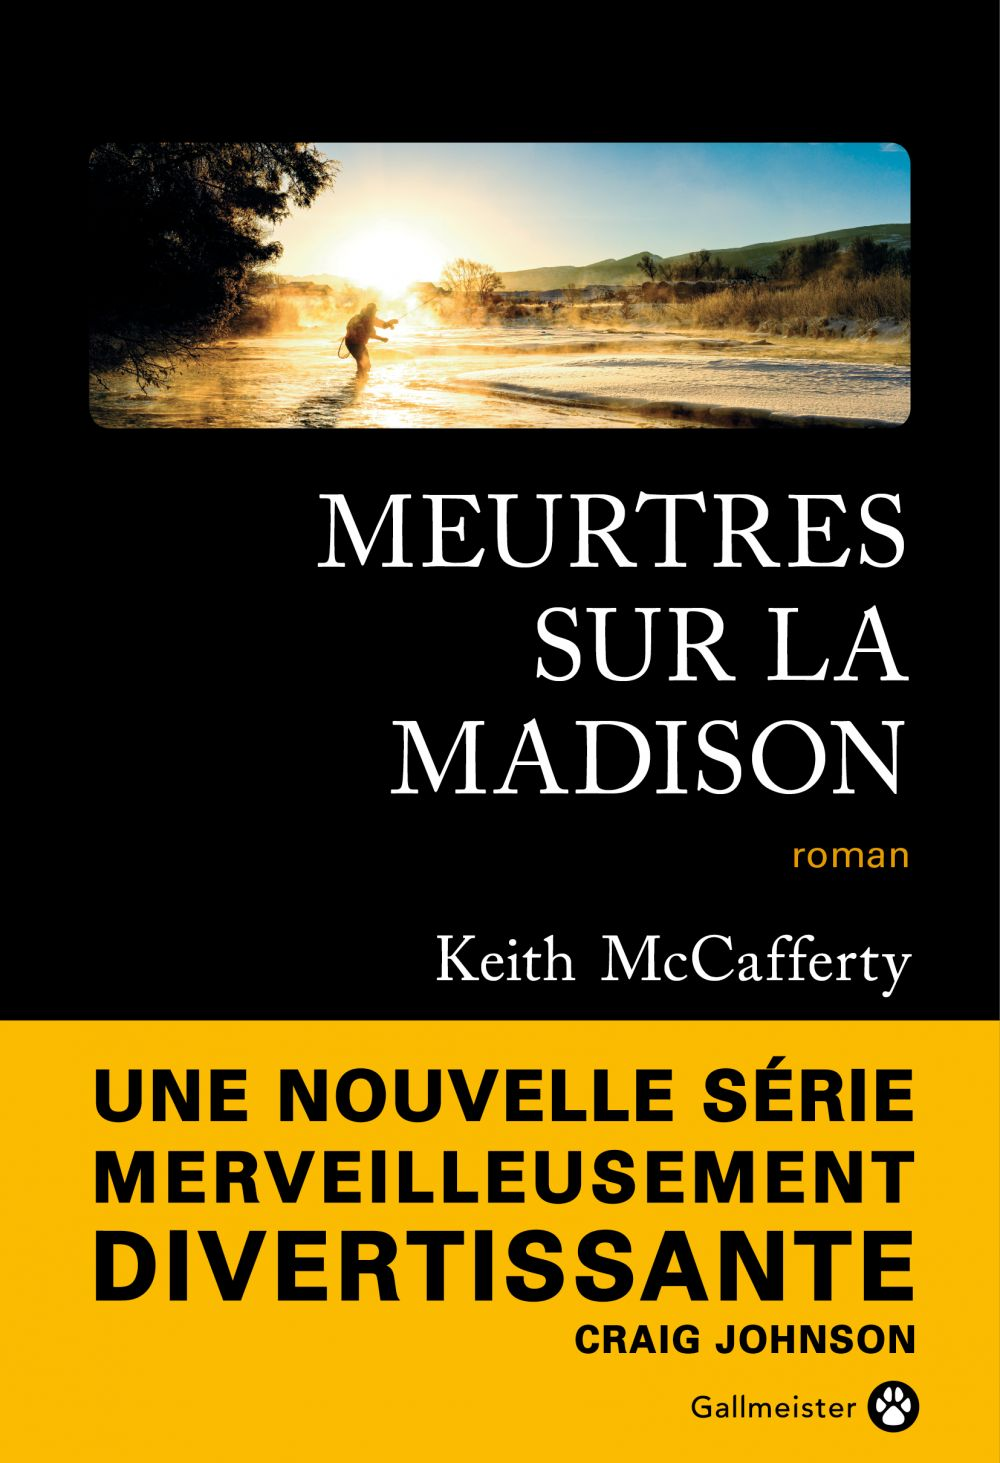 Meurtres sur la Madison